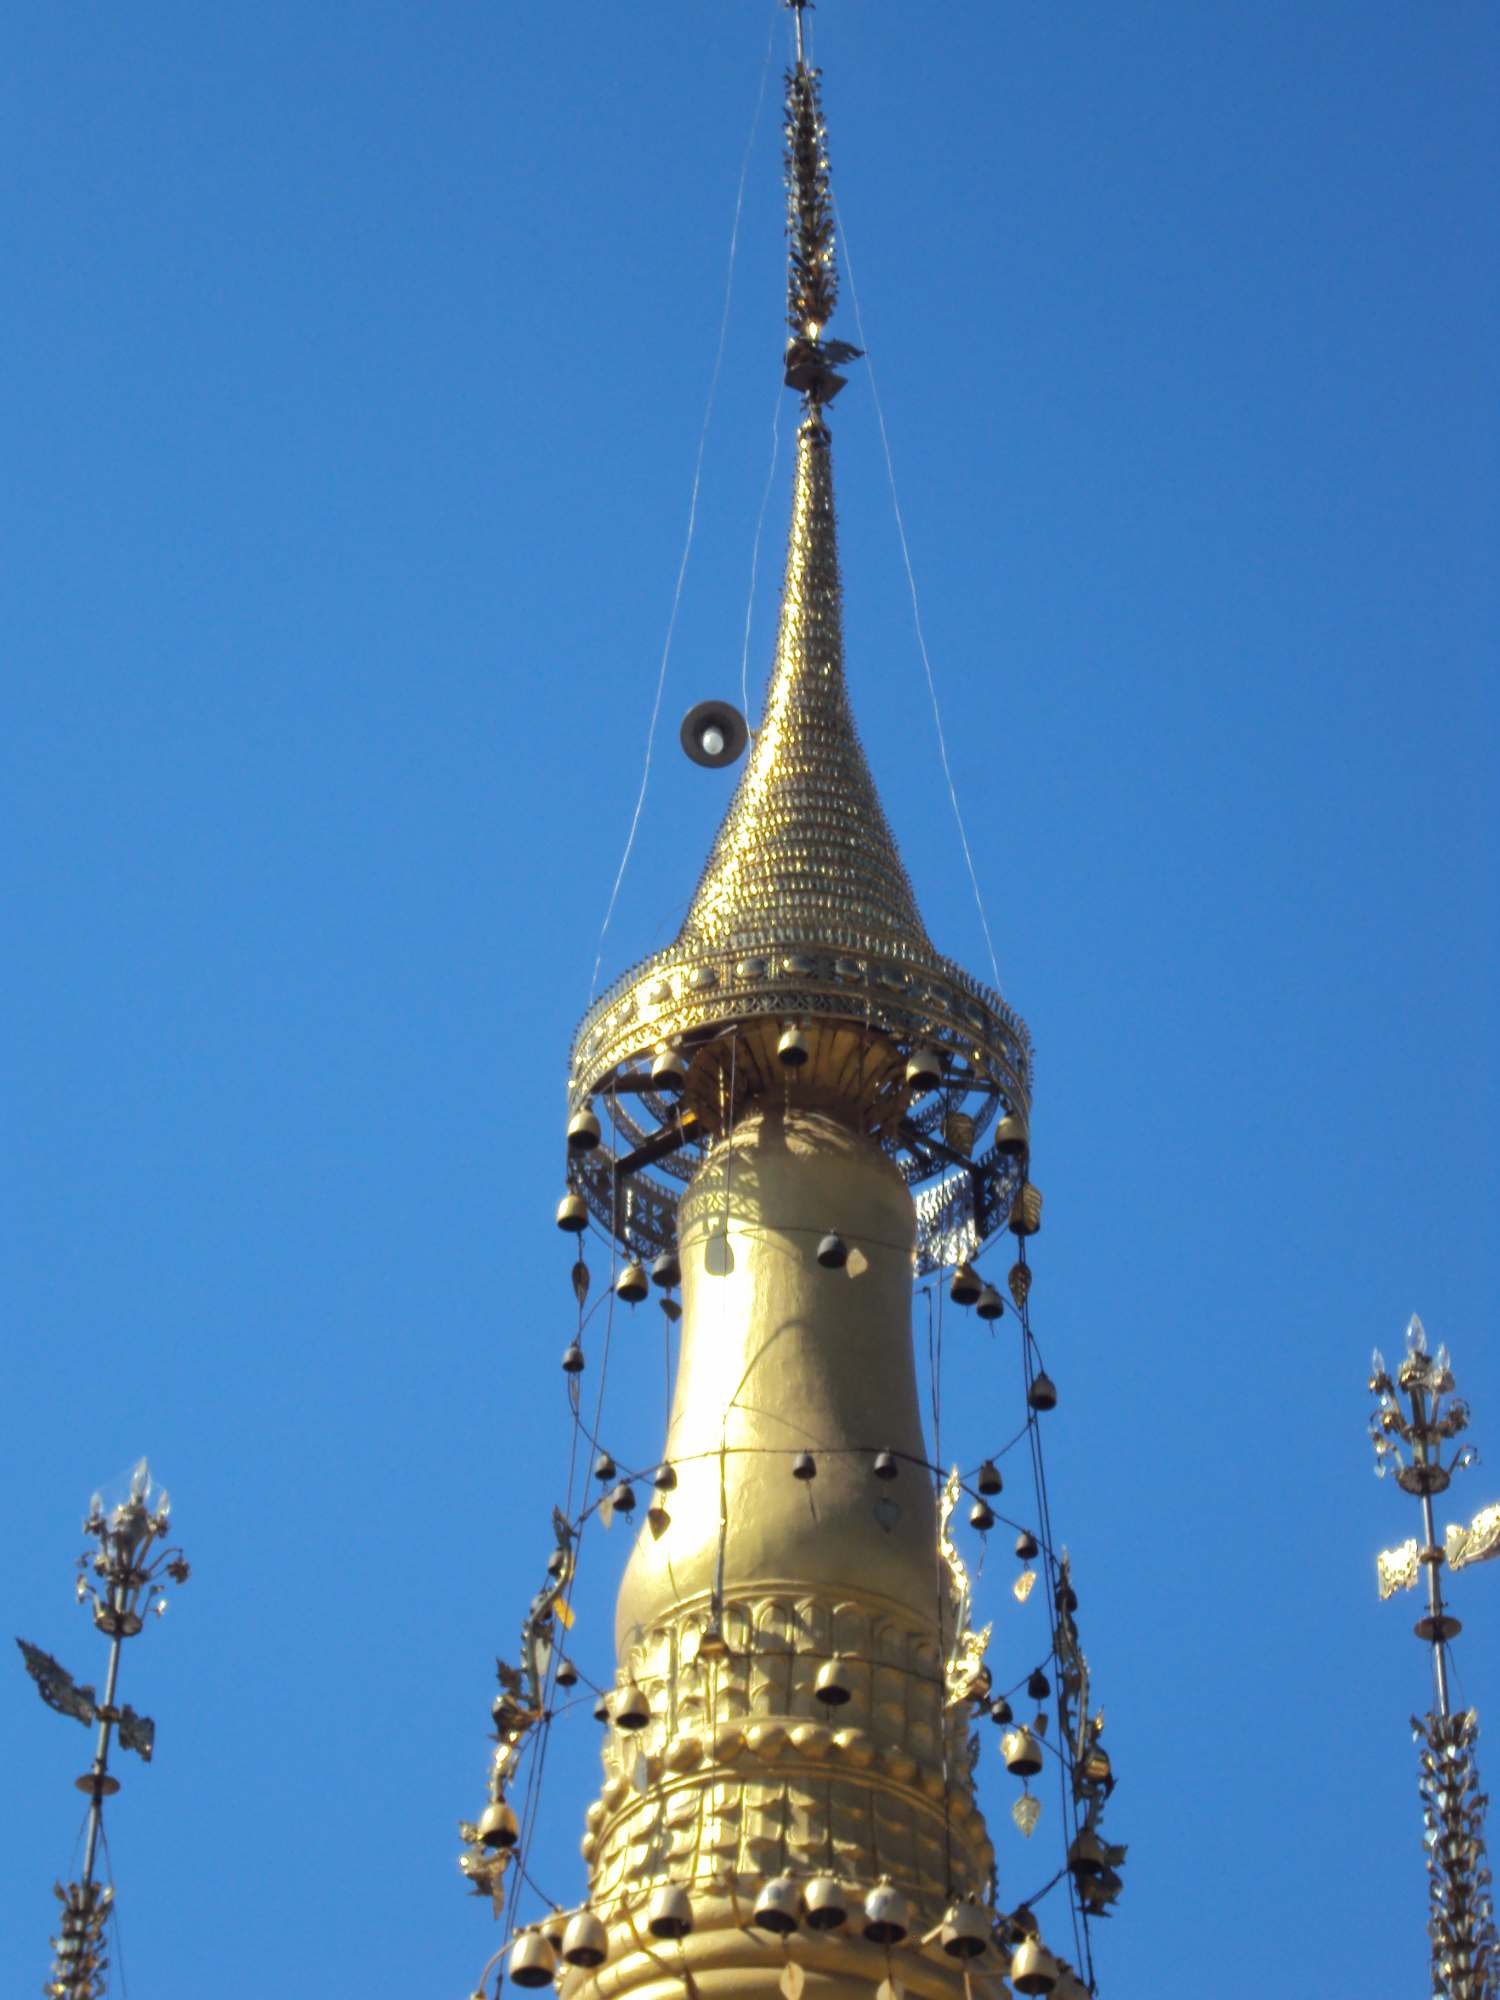 The delicate tinkling of countless tiny bells